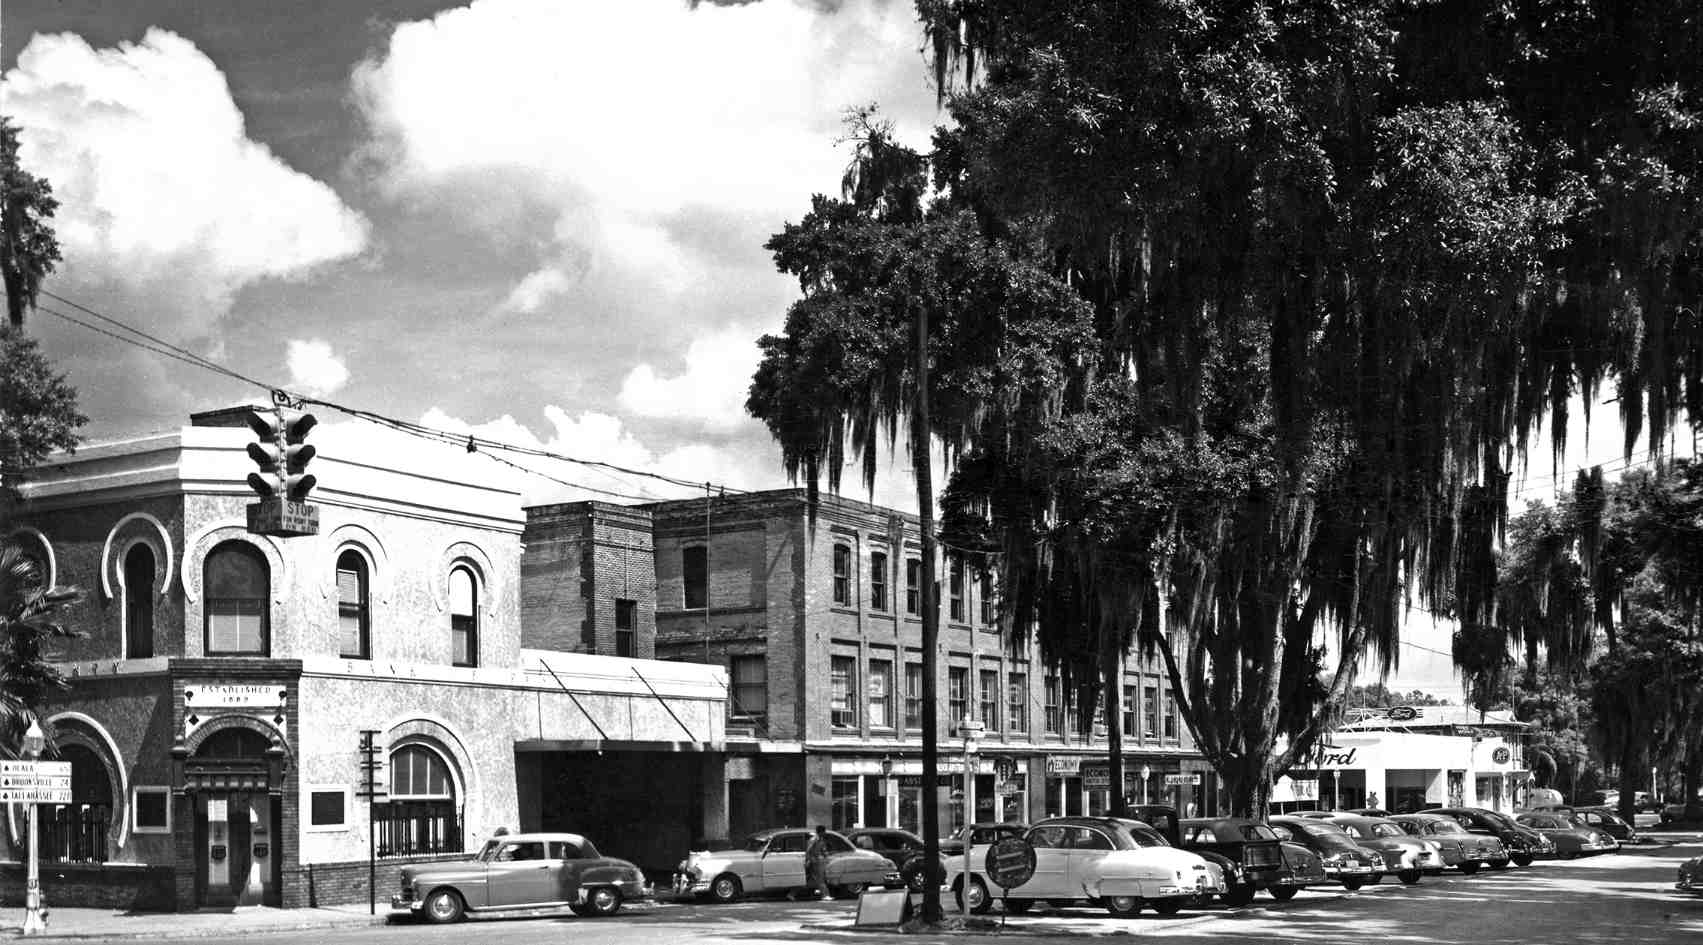 Old down town dade city.